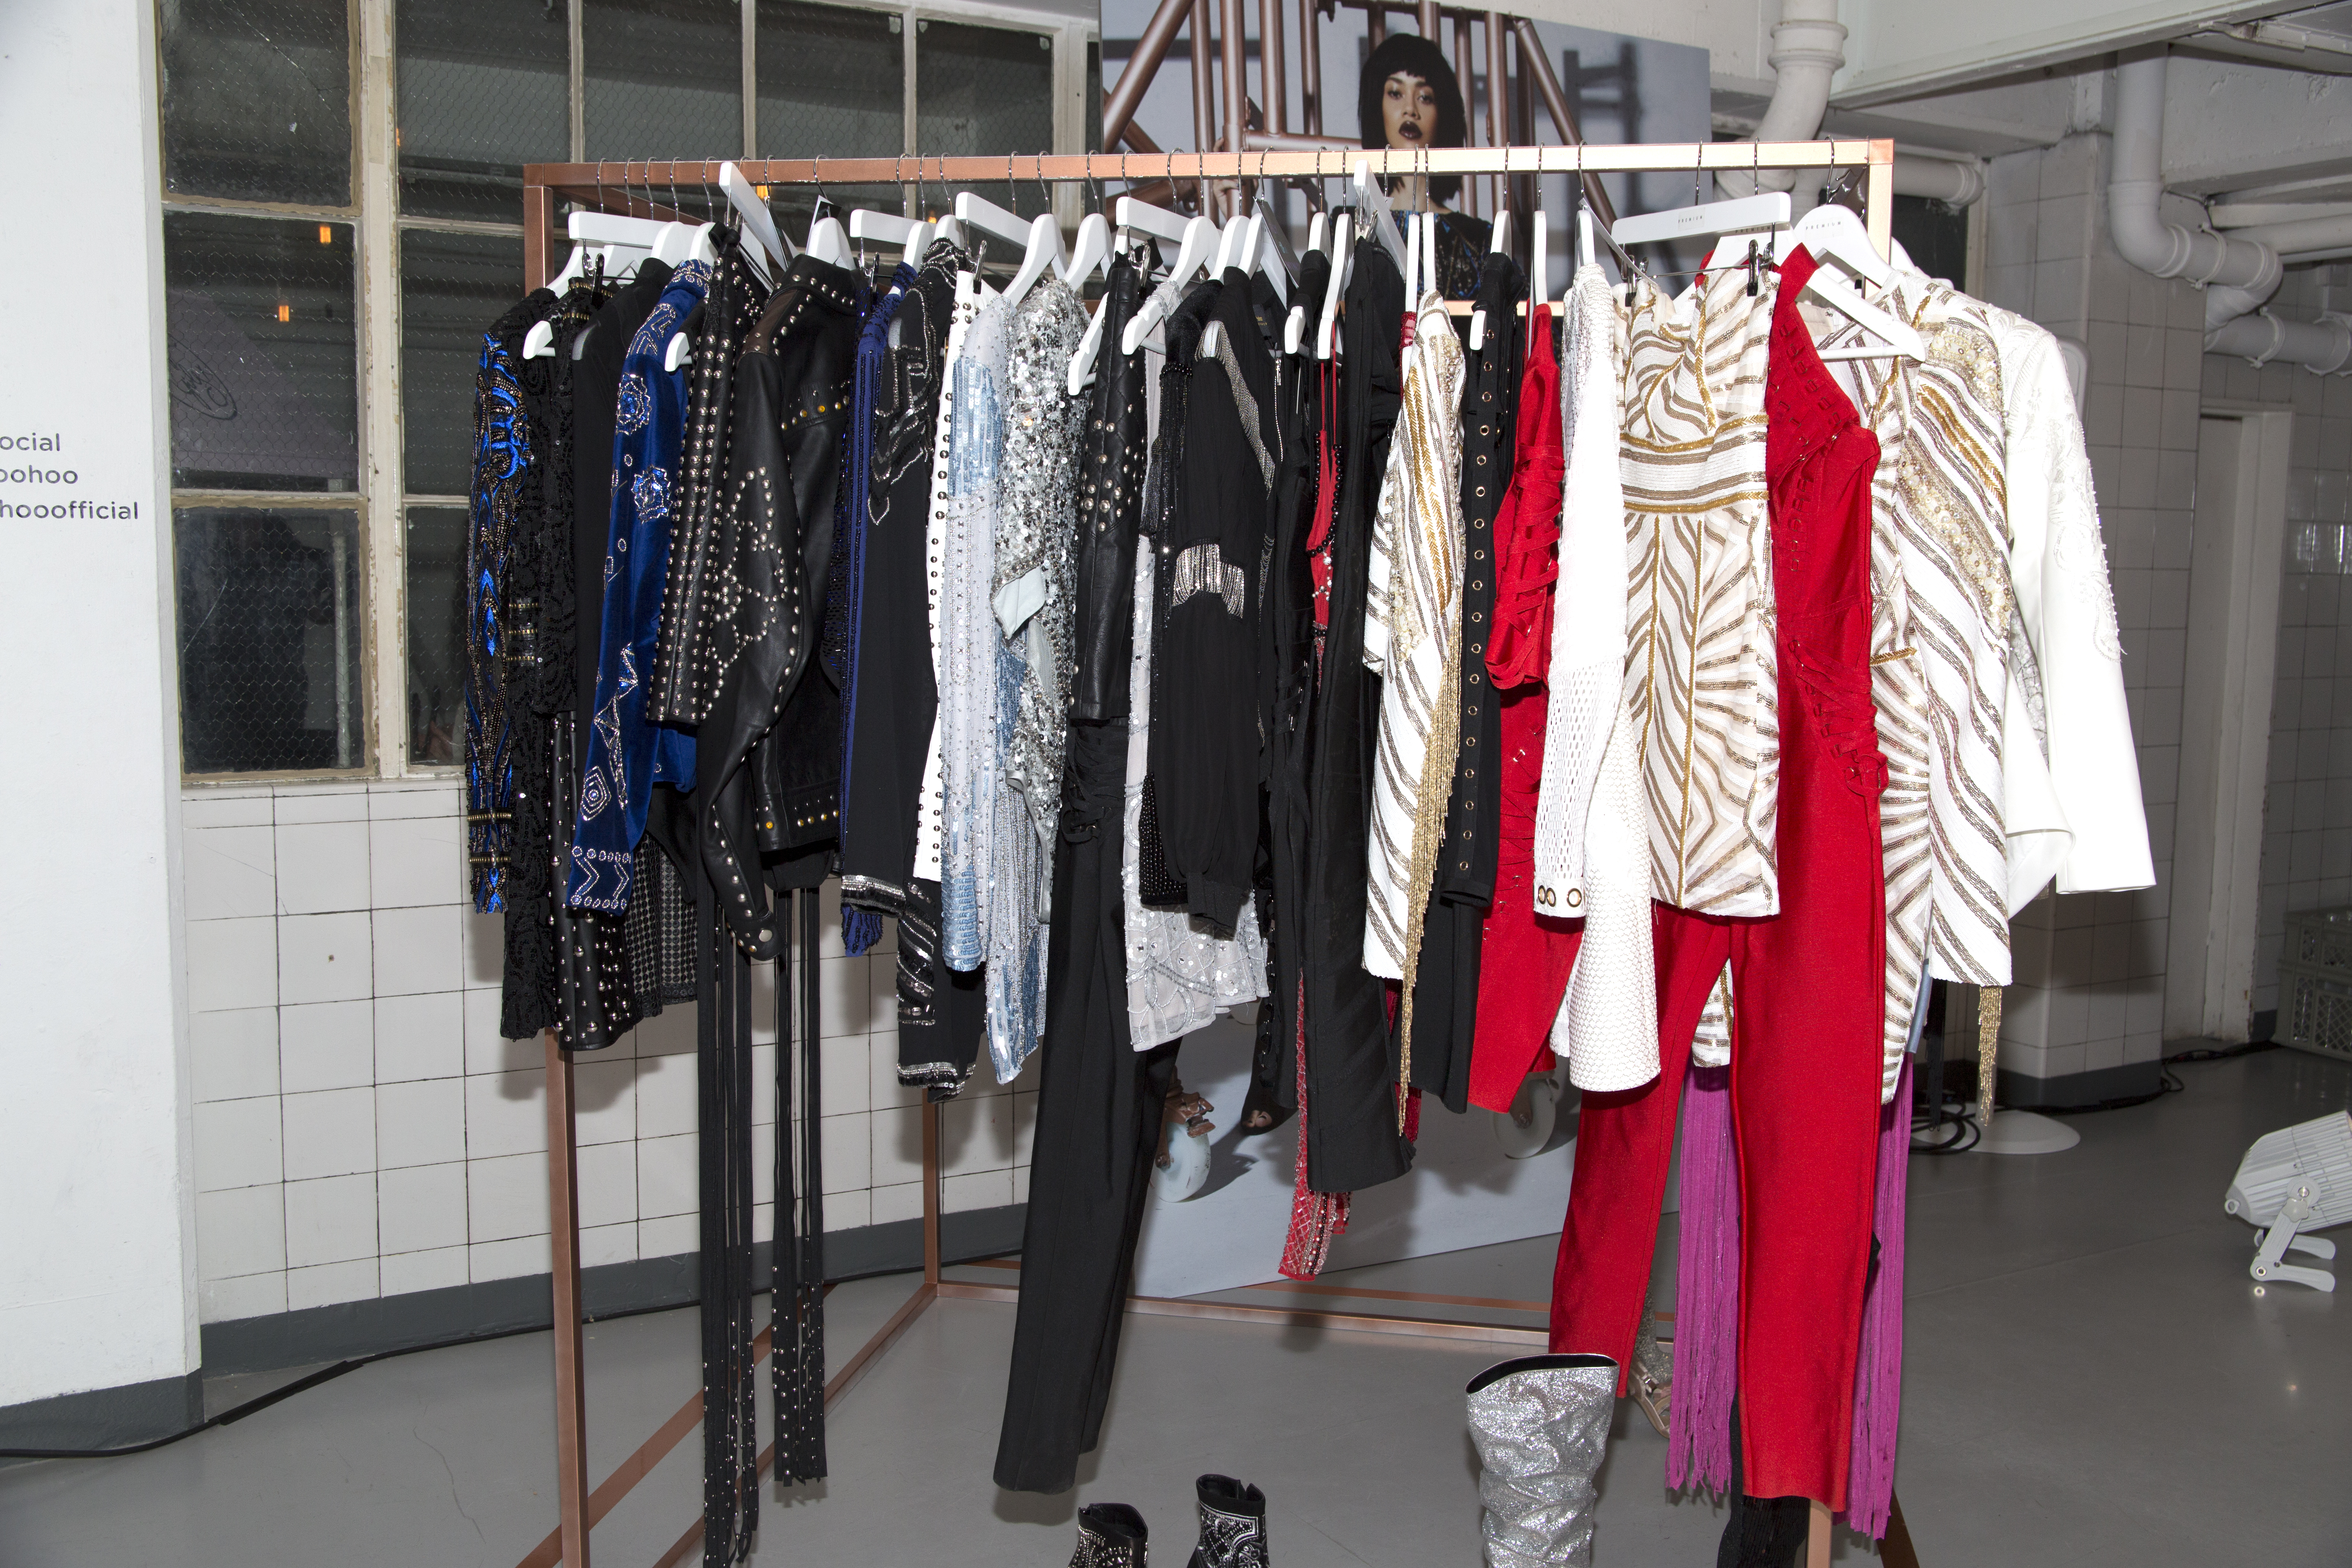 Racked of clothing at Boohoo press preview